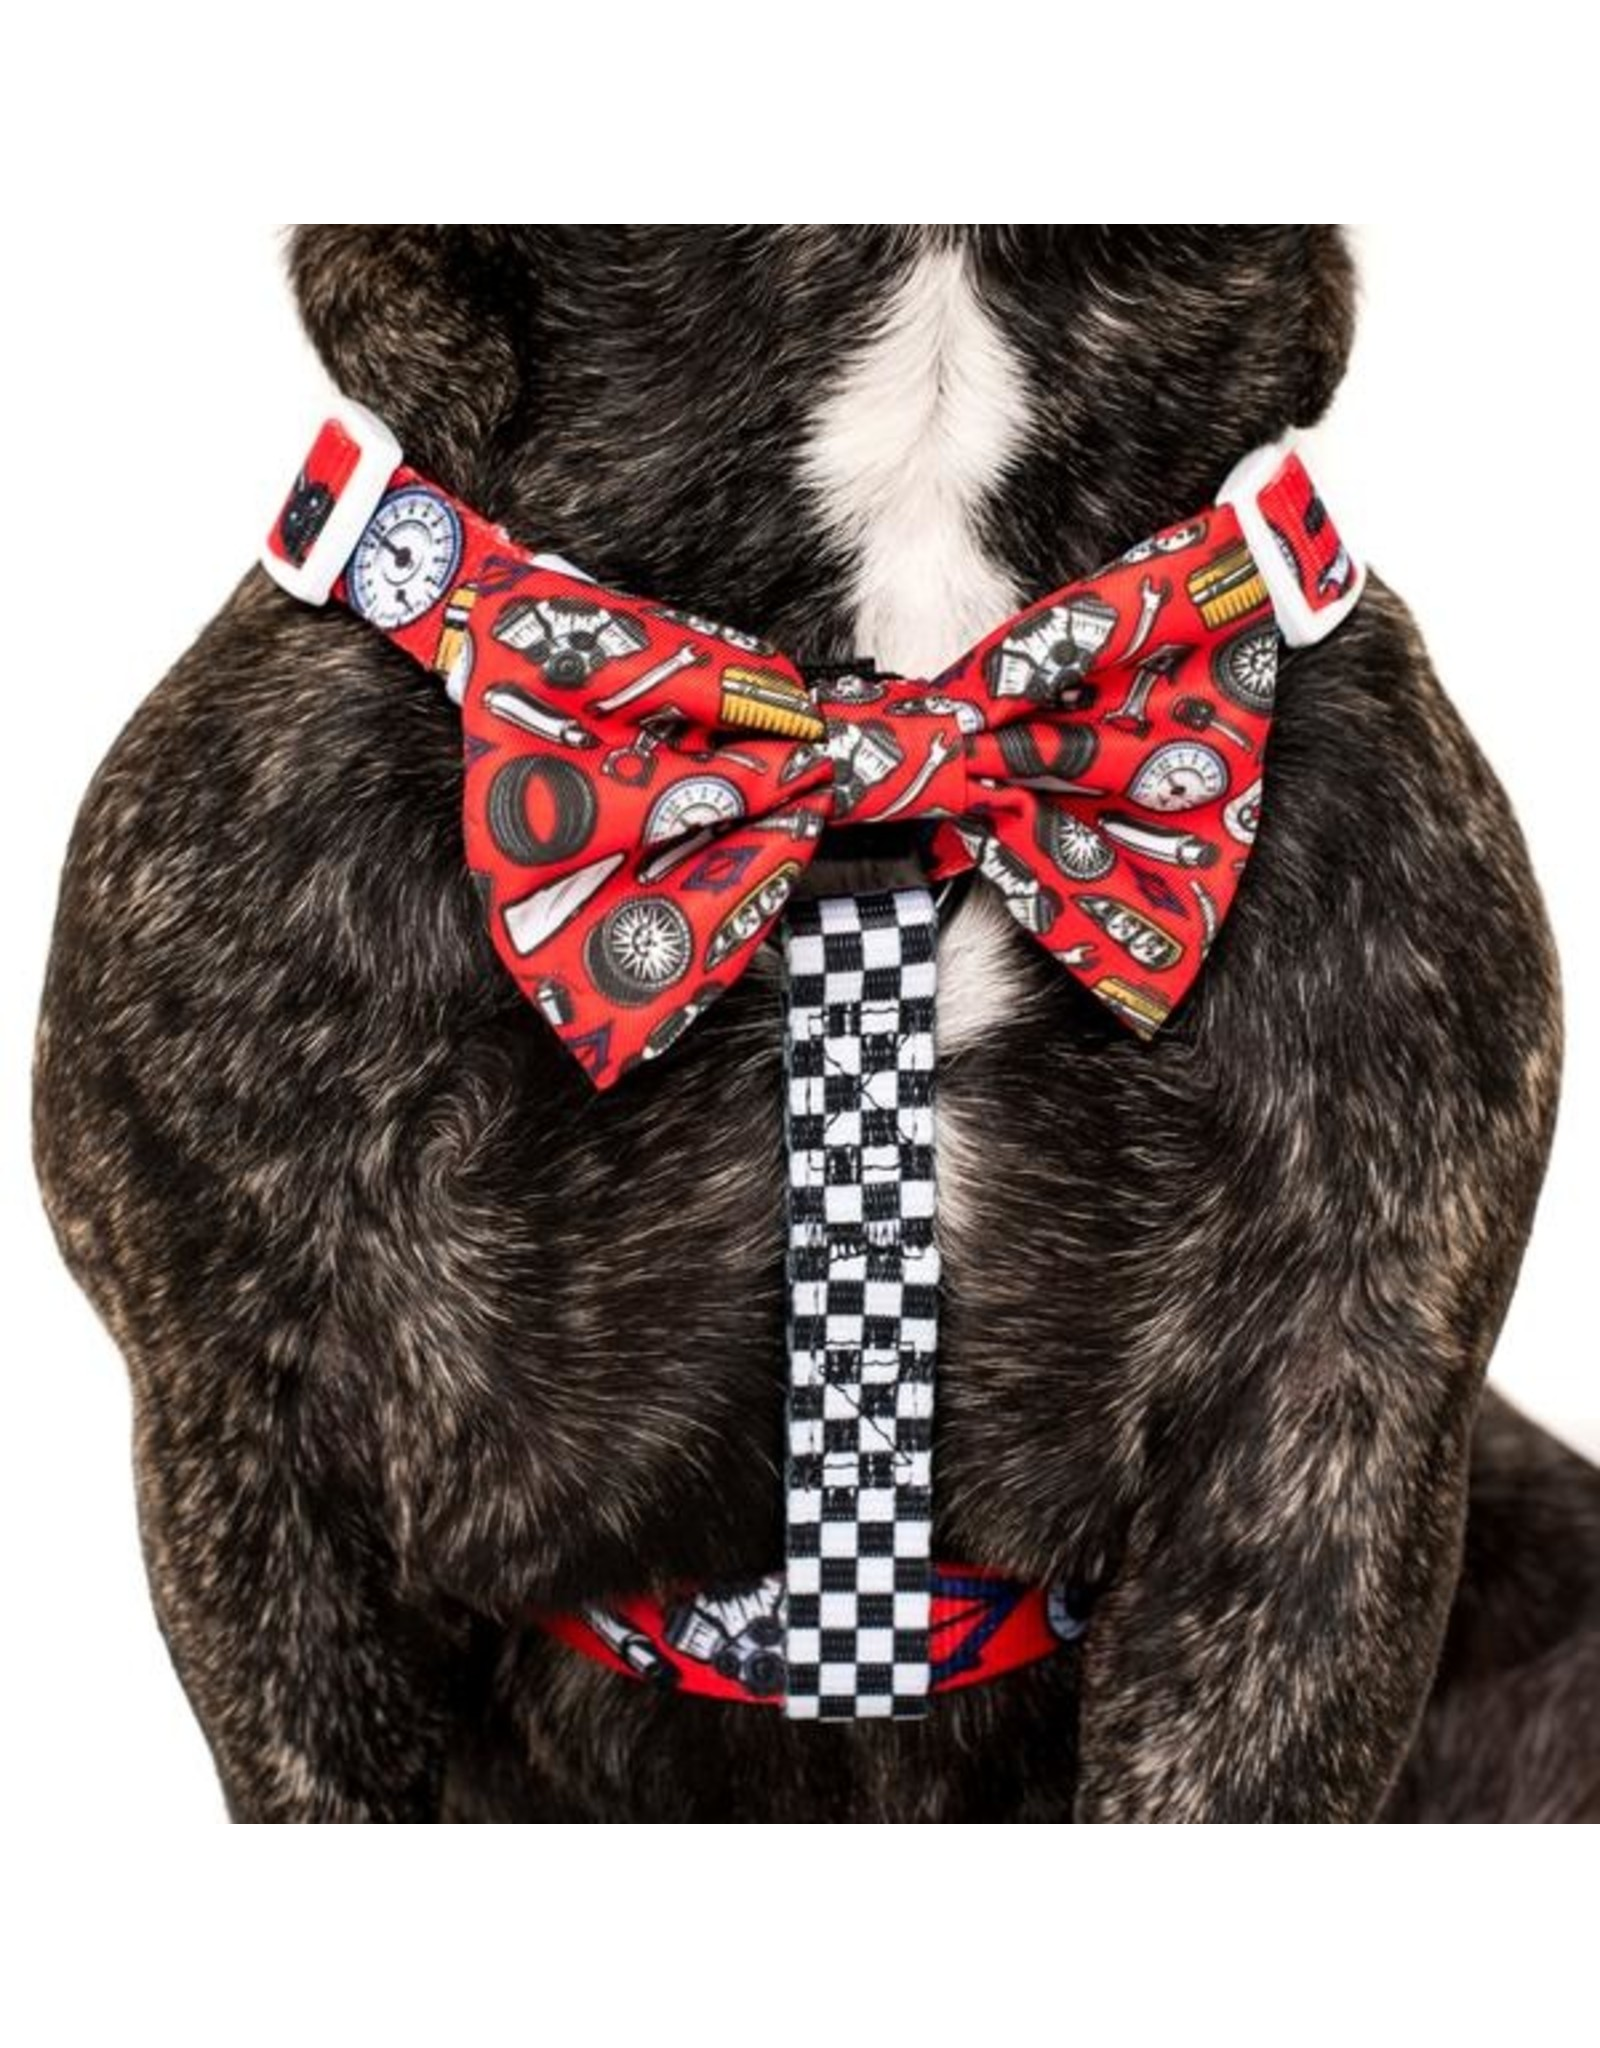 Big and Little Dogs Big and Little Dogs Strap Harness Need For Speed